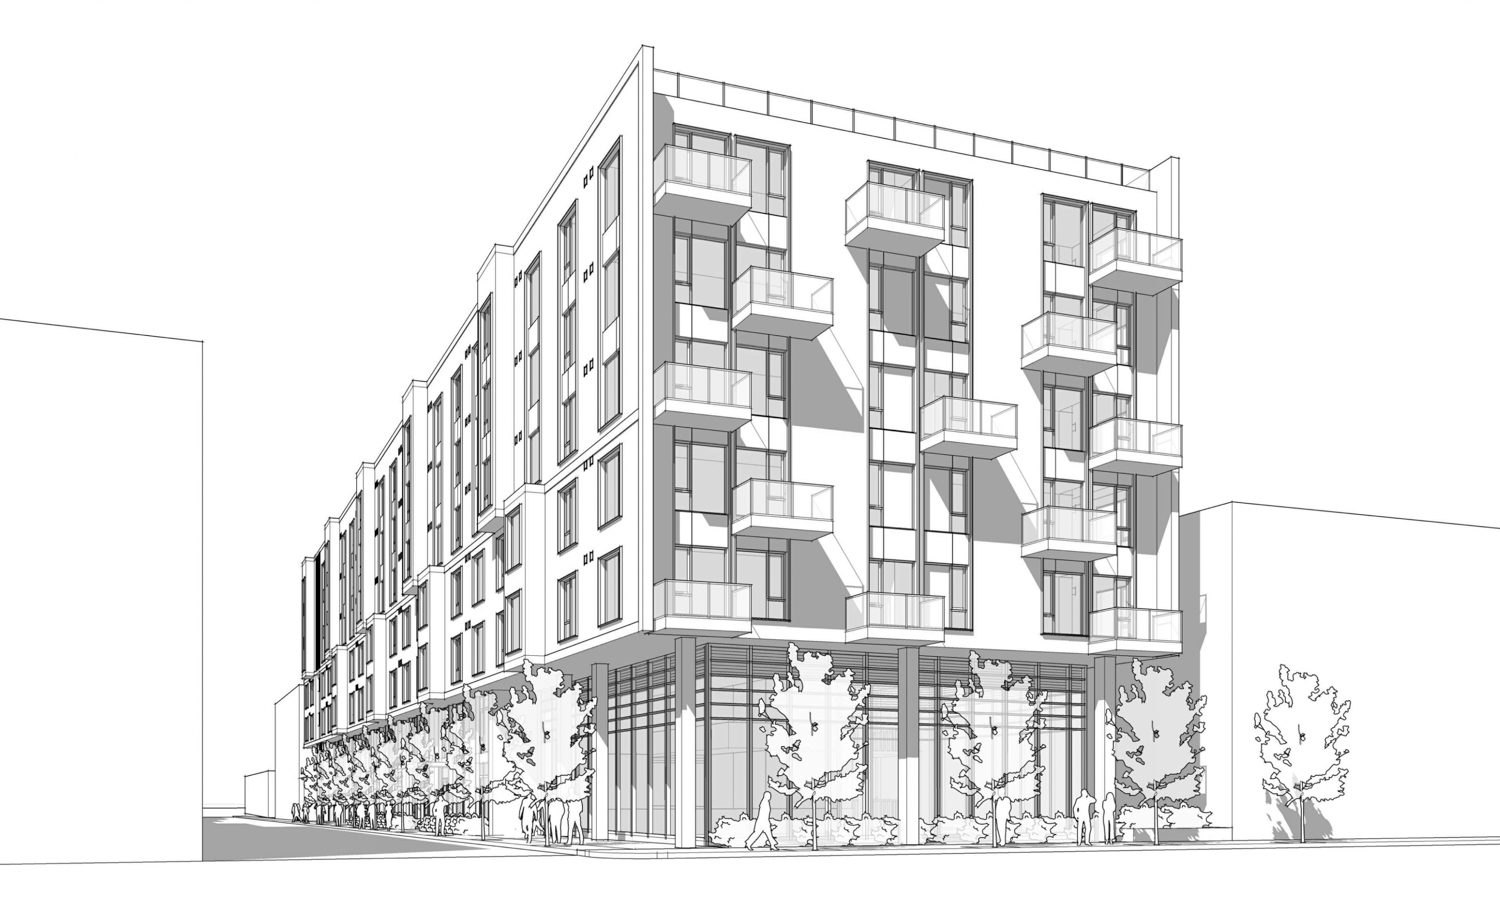 925 Bryant Street pedestrian perspective, illustration by BAR Architects